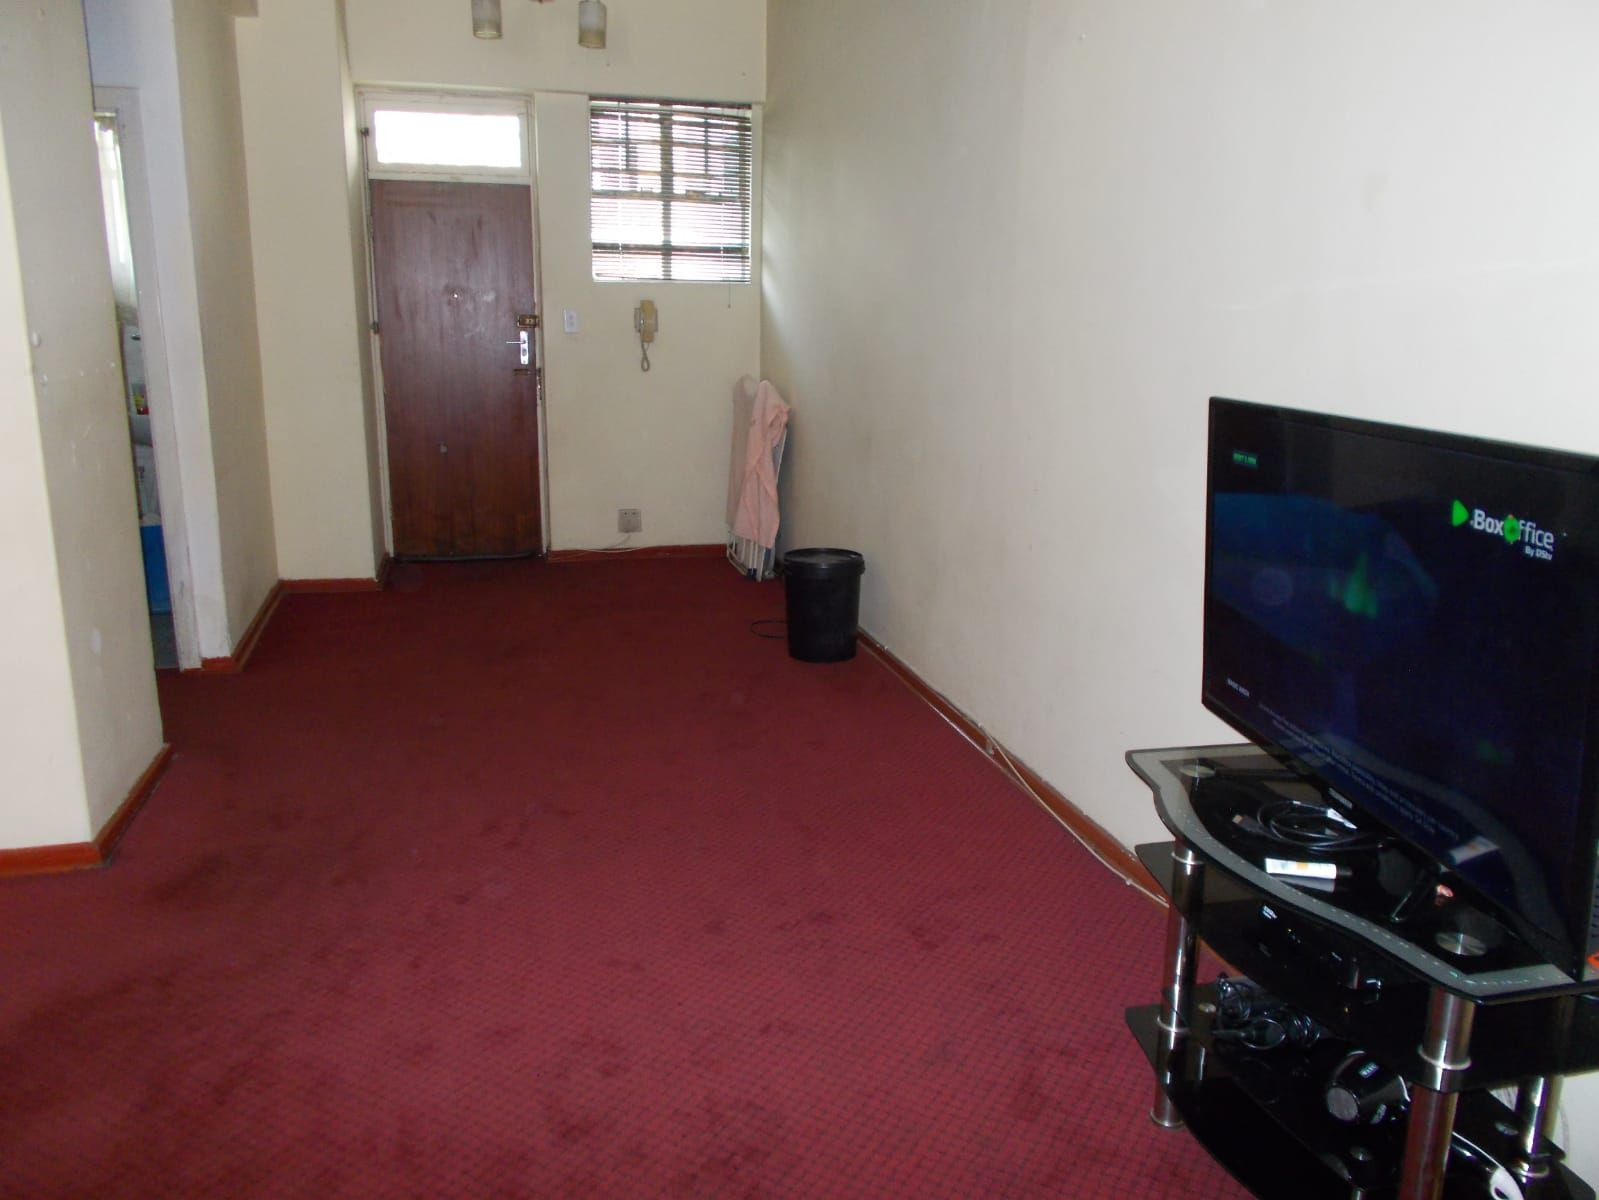 Apartment in Hillbrow - WhatsApp Image 2021-01-12 at 13.03.08.jpeg